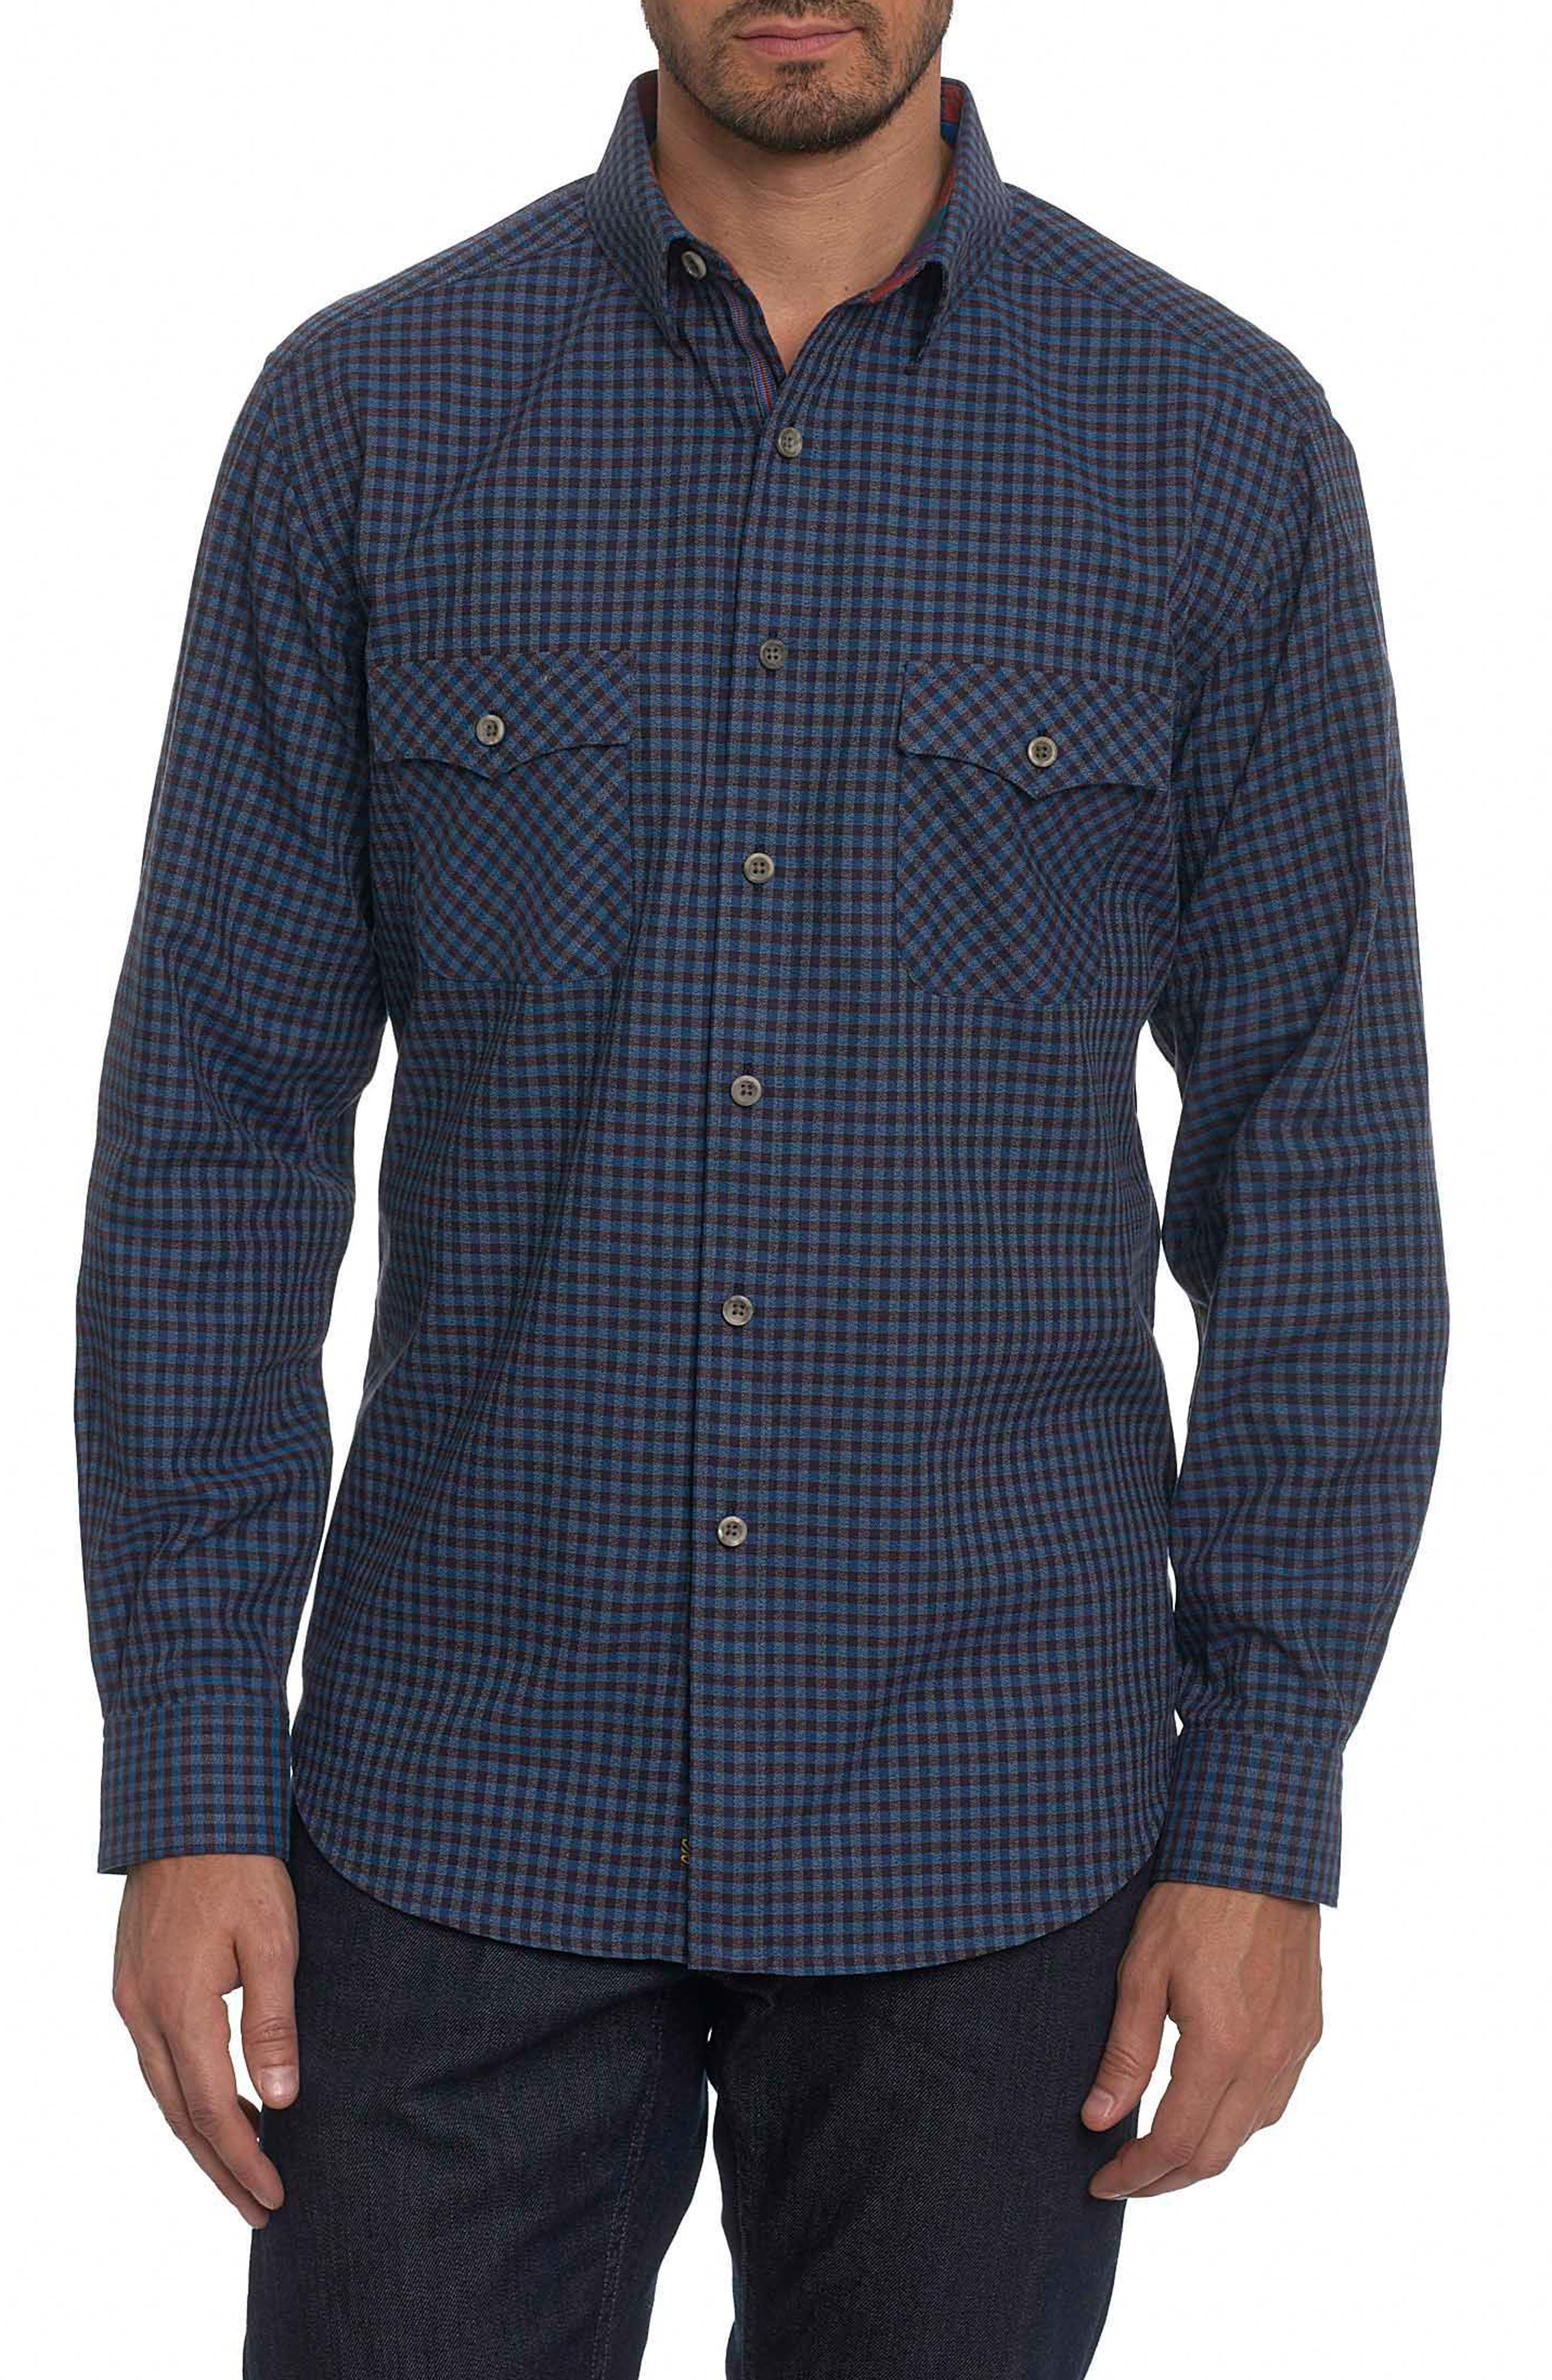 Newcomb Classic Fit Sport Shirt,                         Main,                         color, Navy